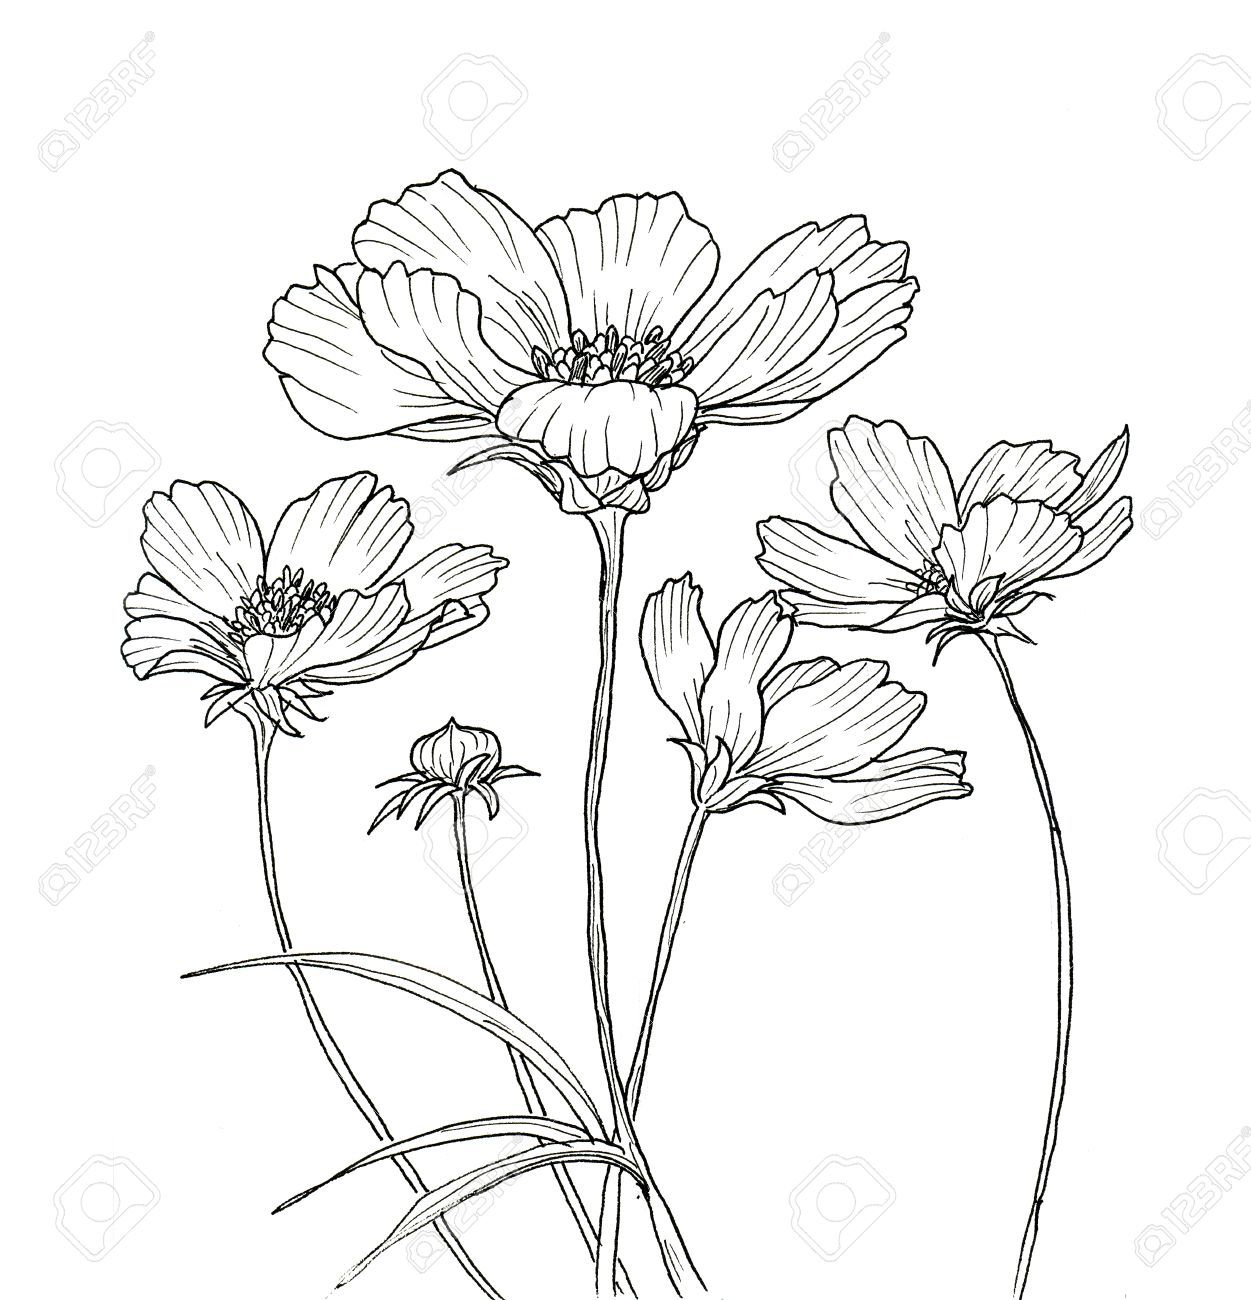 Line ink drawing of cosmos flower black contour on white background